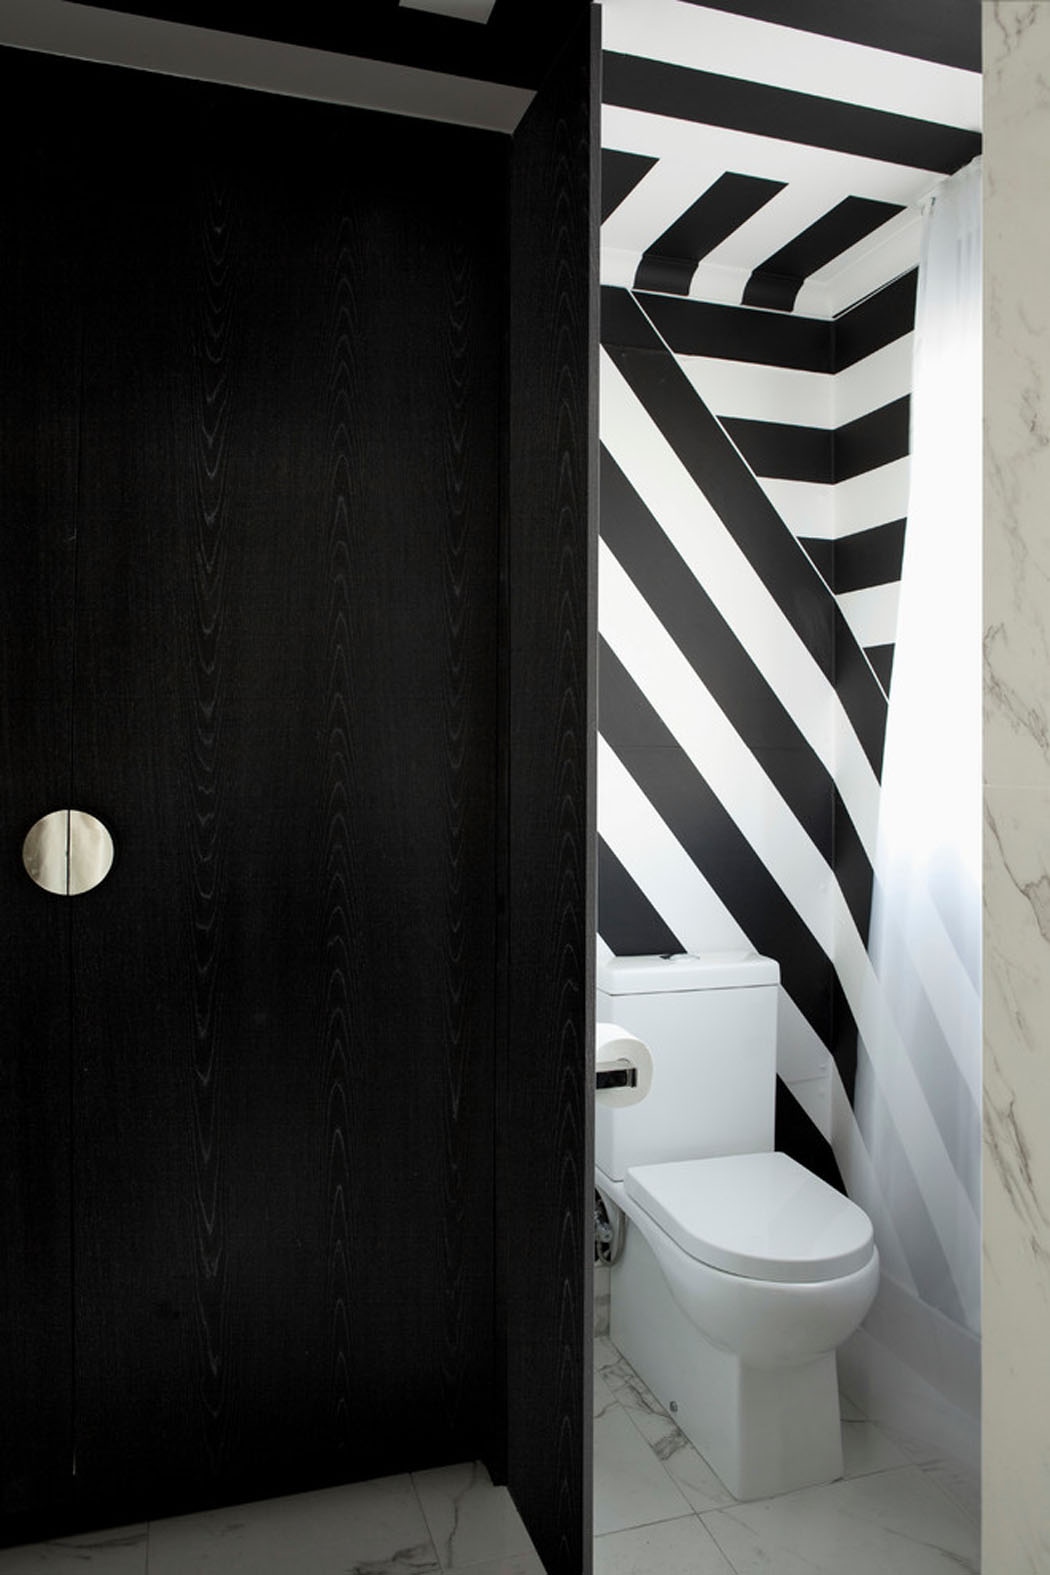 Bel appartement design brisbane la d co l gante en - Deco toilette noir et blanc ...